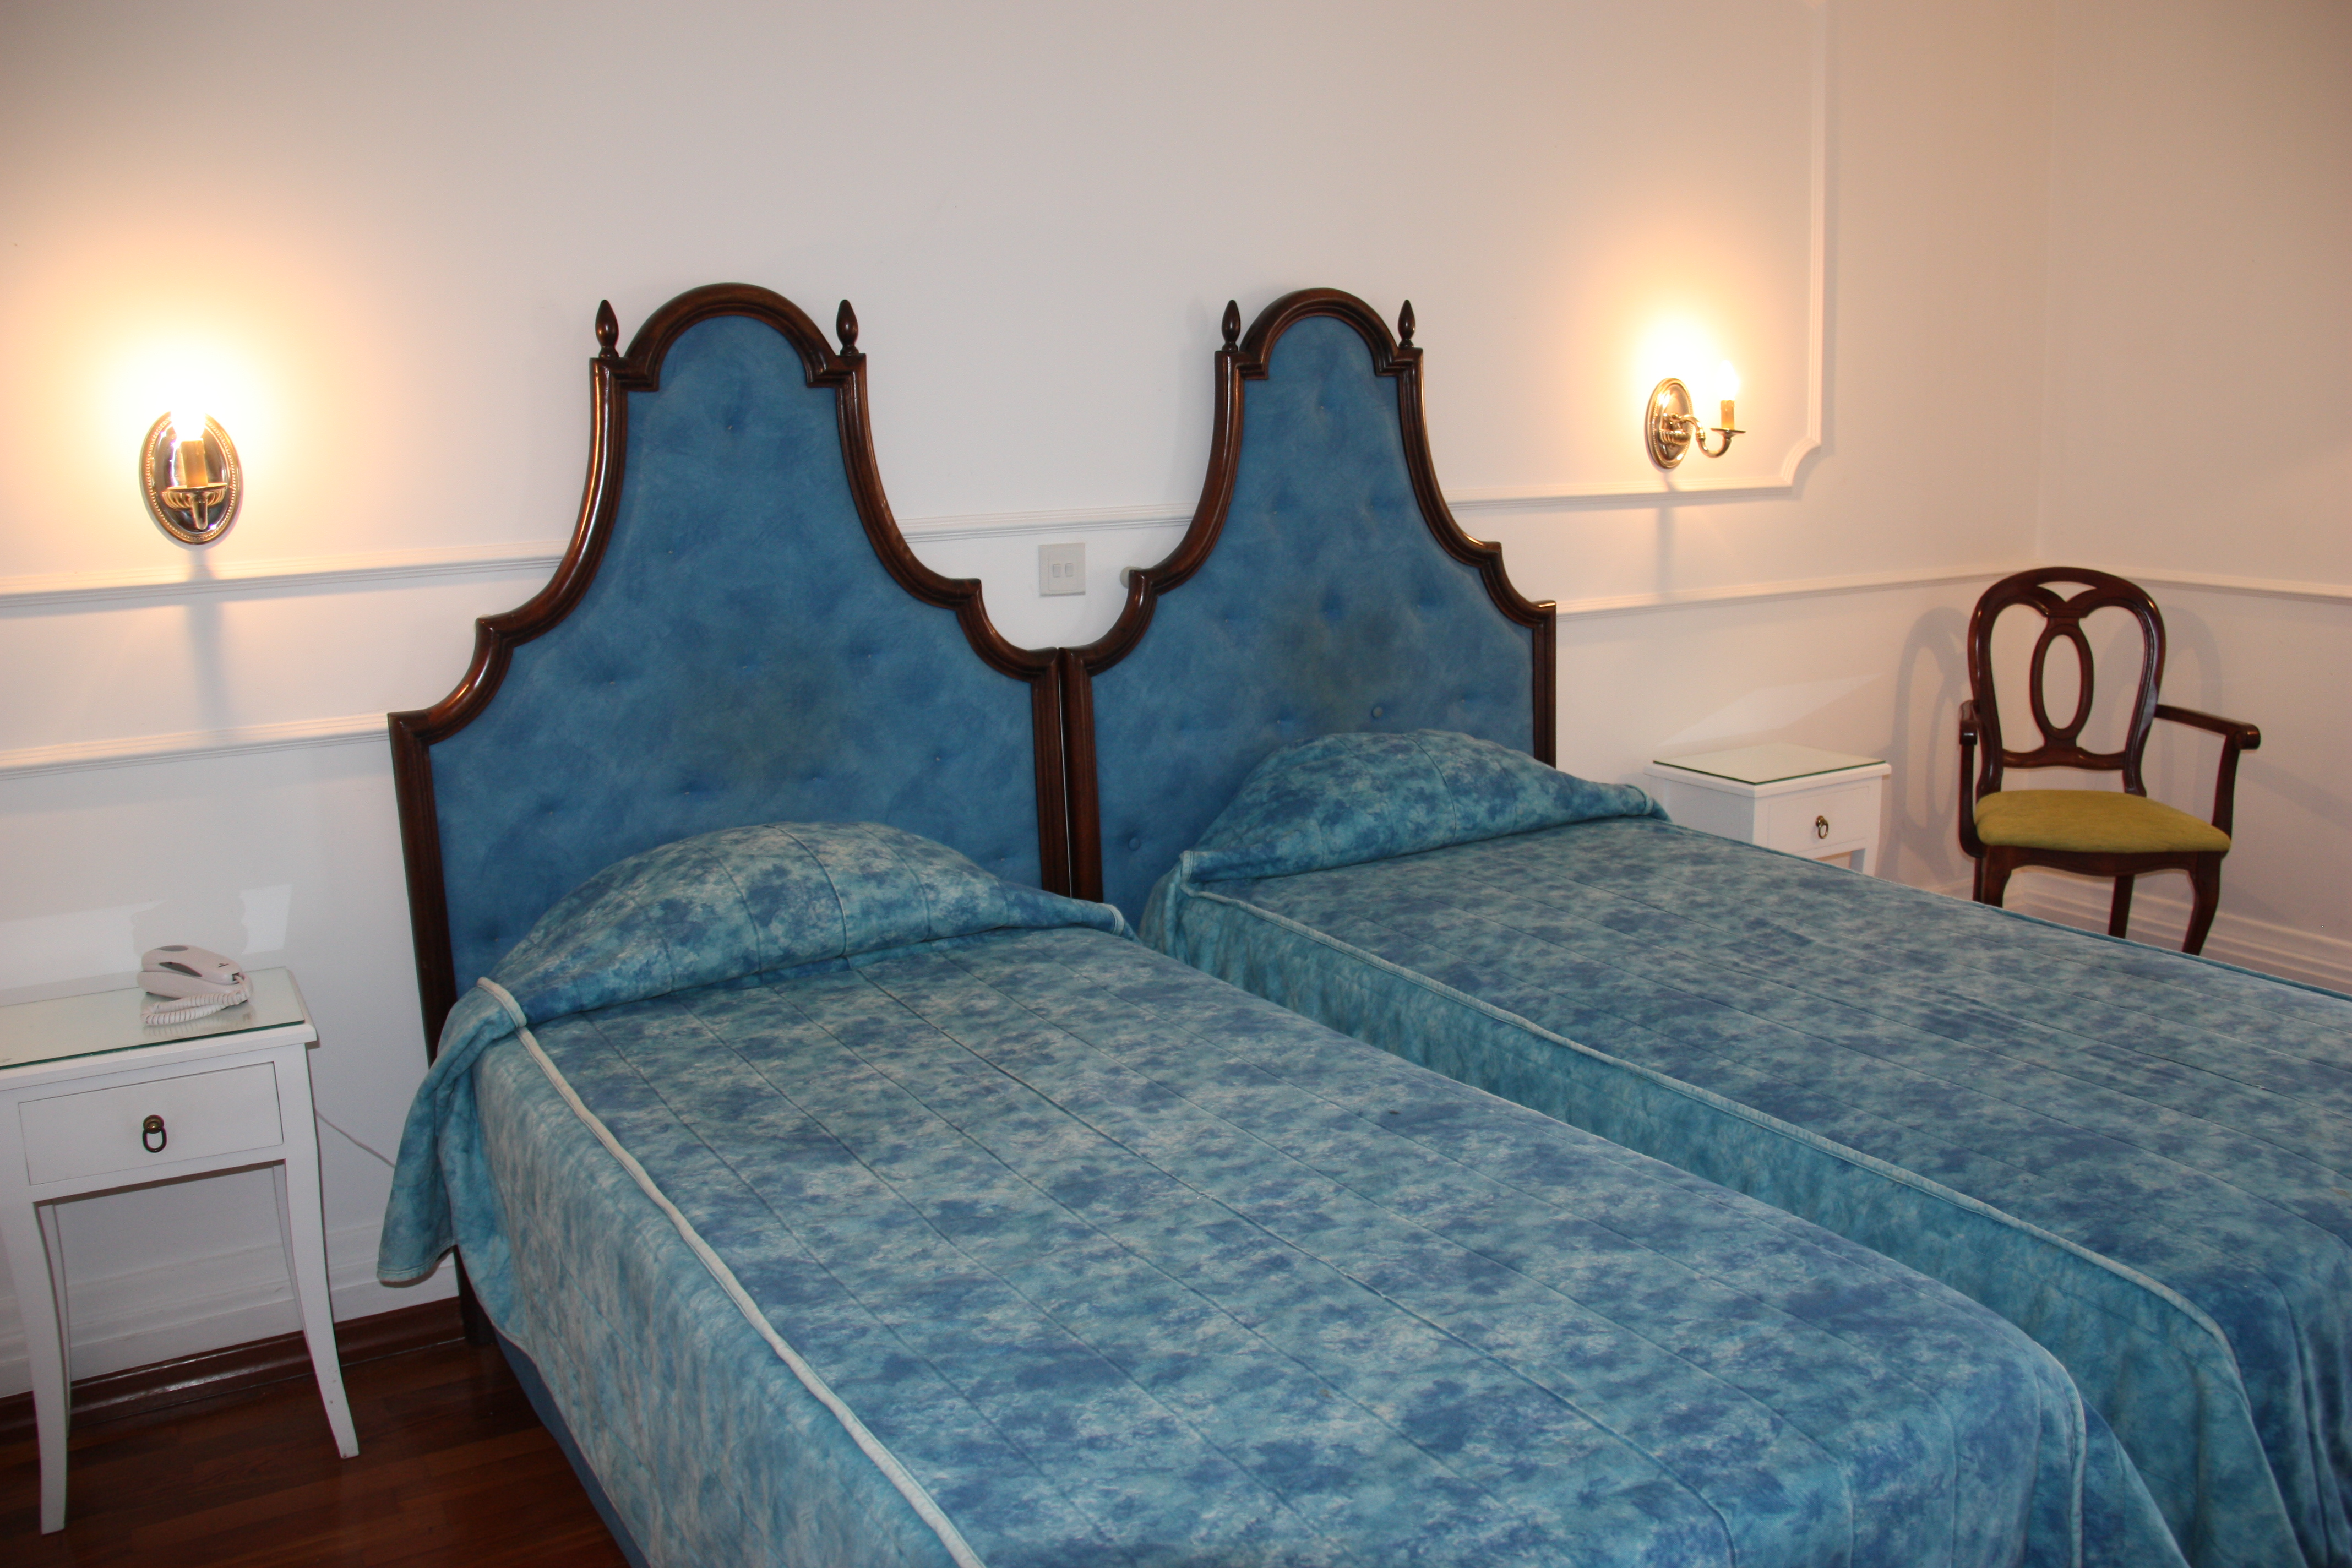 Spacious and comfortable Standard Twin room at Castille Hotel in Valletta